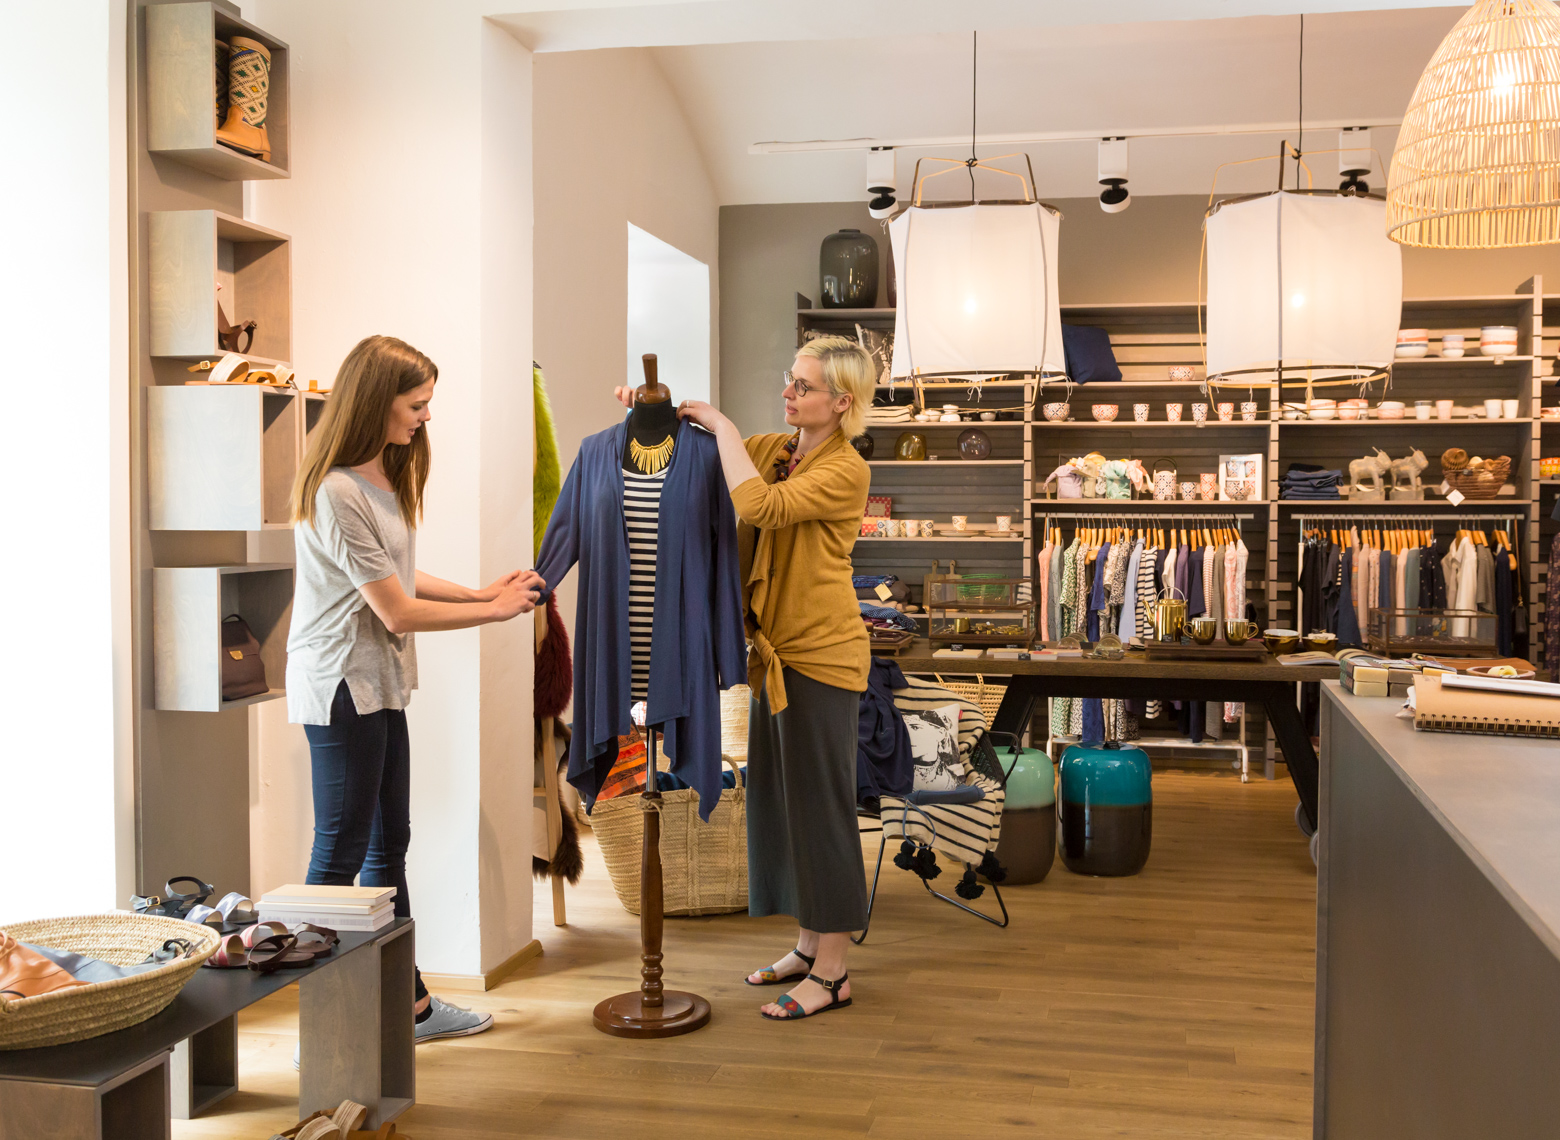 Women small business owner and employee working together arranging product displays in fashion clothing boutique shop store